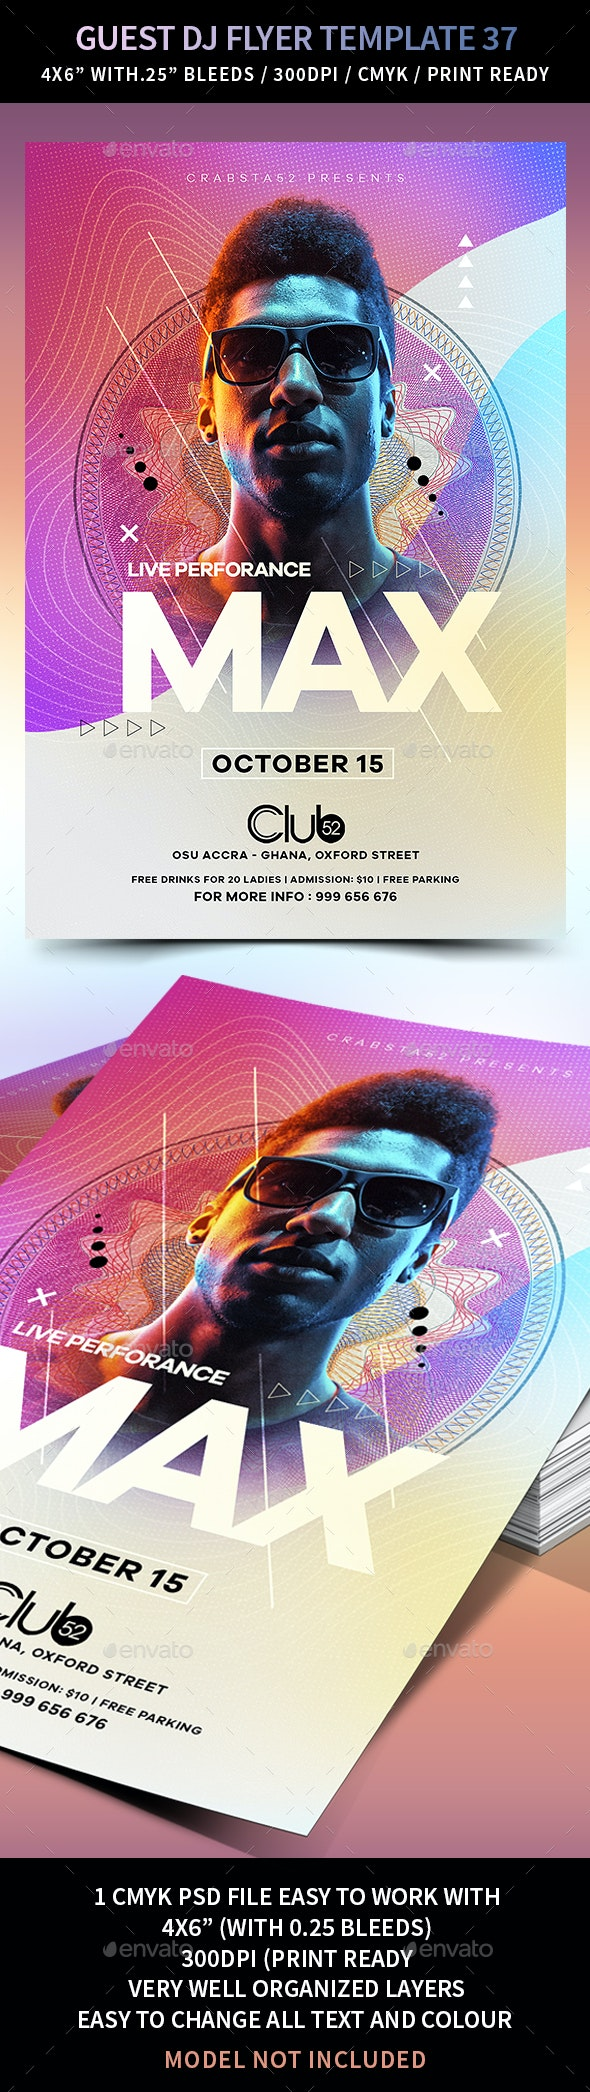 Guest DJ Flyer Template 37 - Events Flyers